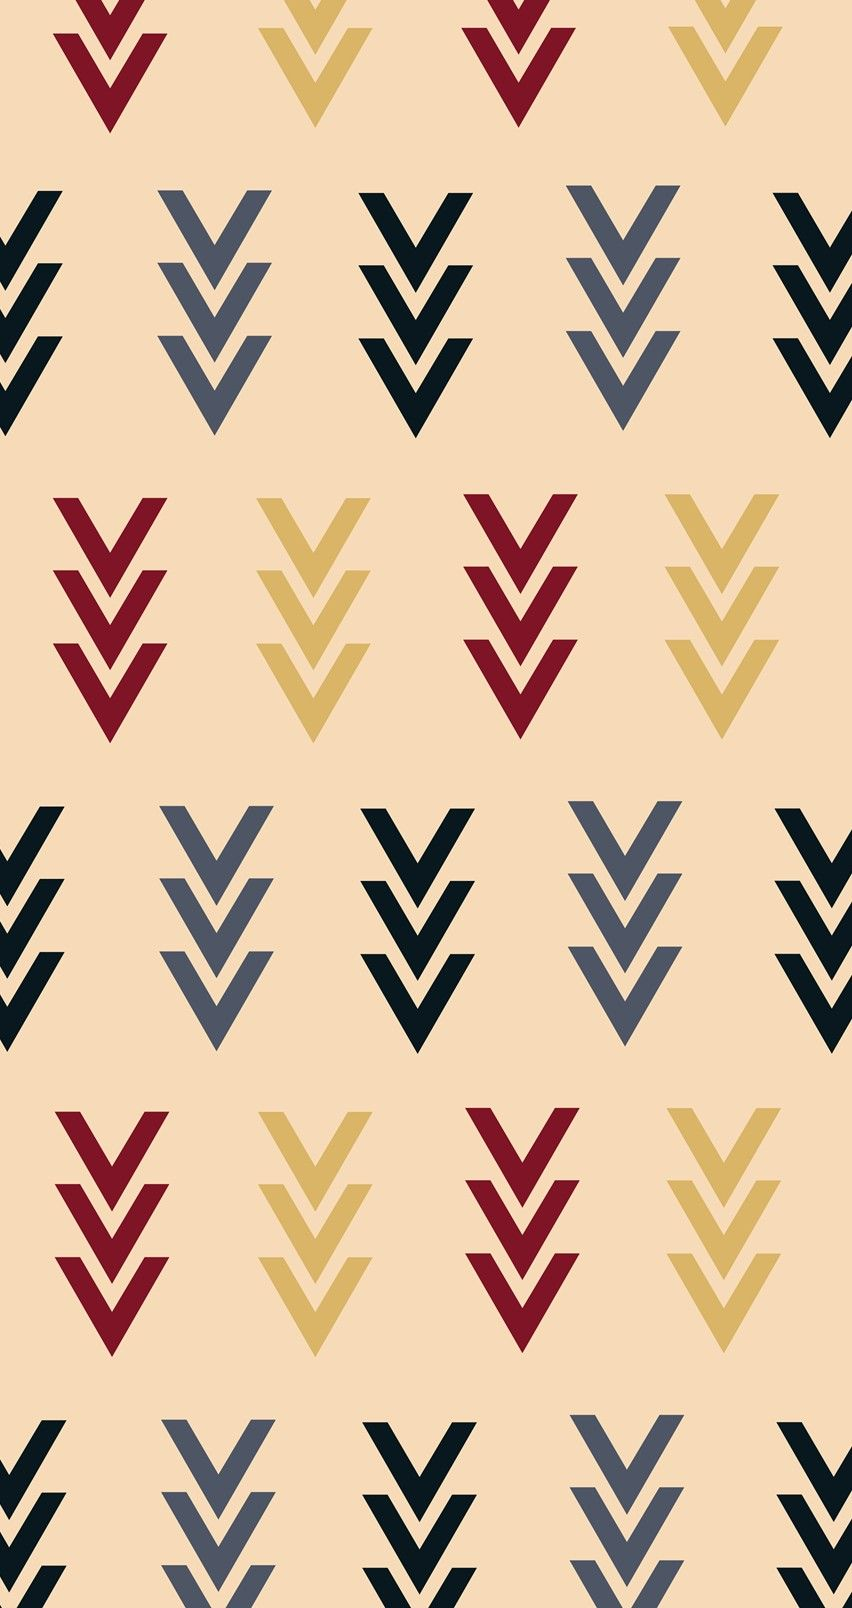 Vintage Hipster - Tap to see more hipster pattern ...